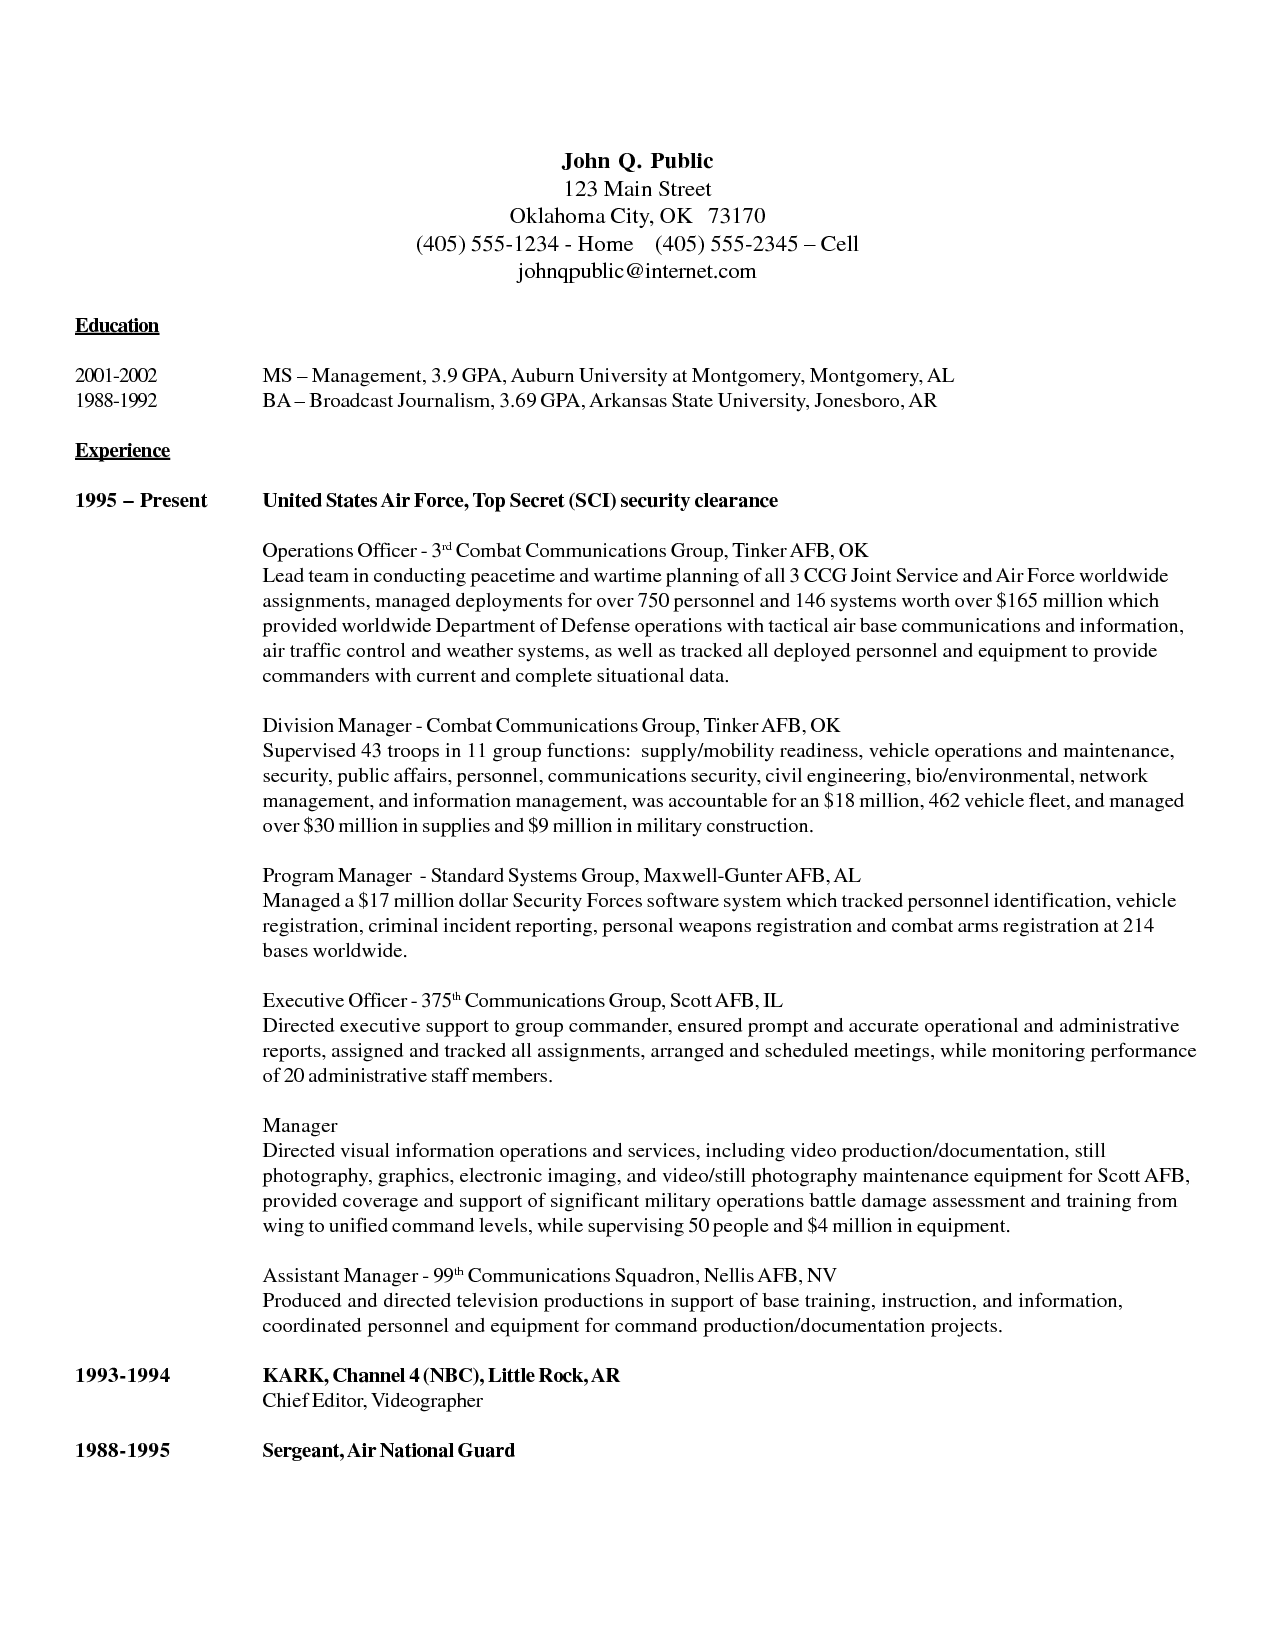 resume Resume For Security Officer security officer resume httpwww resumecareer infosecurity infosecurity